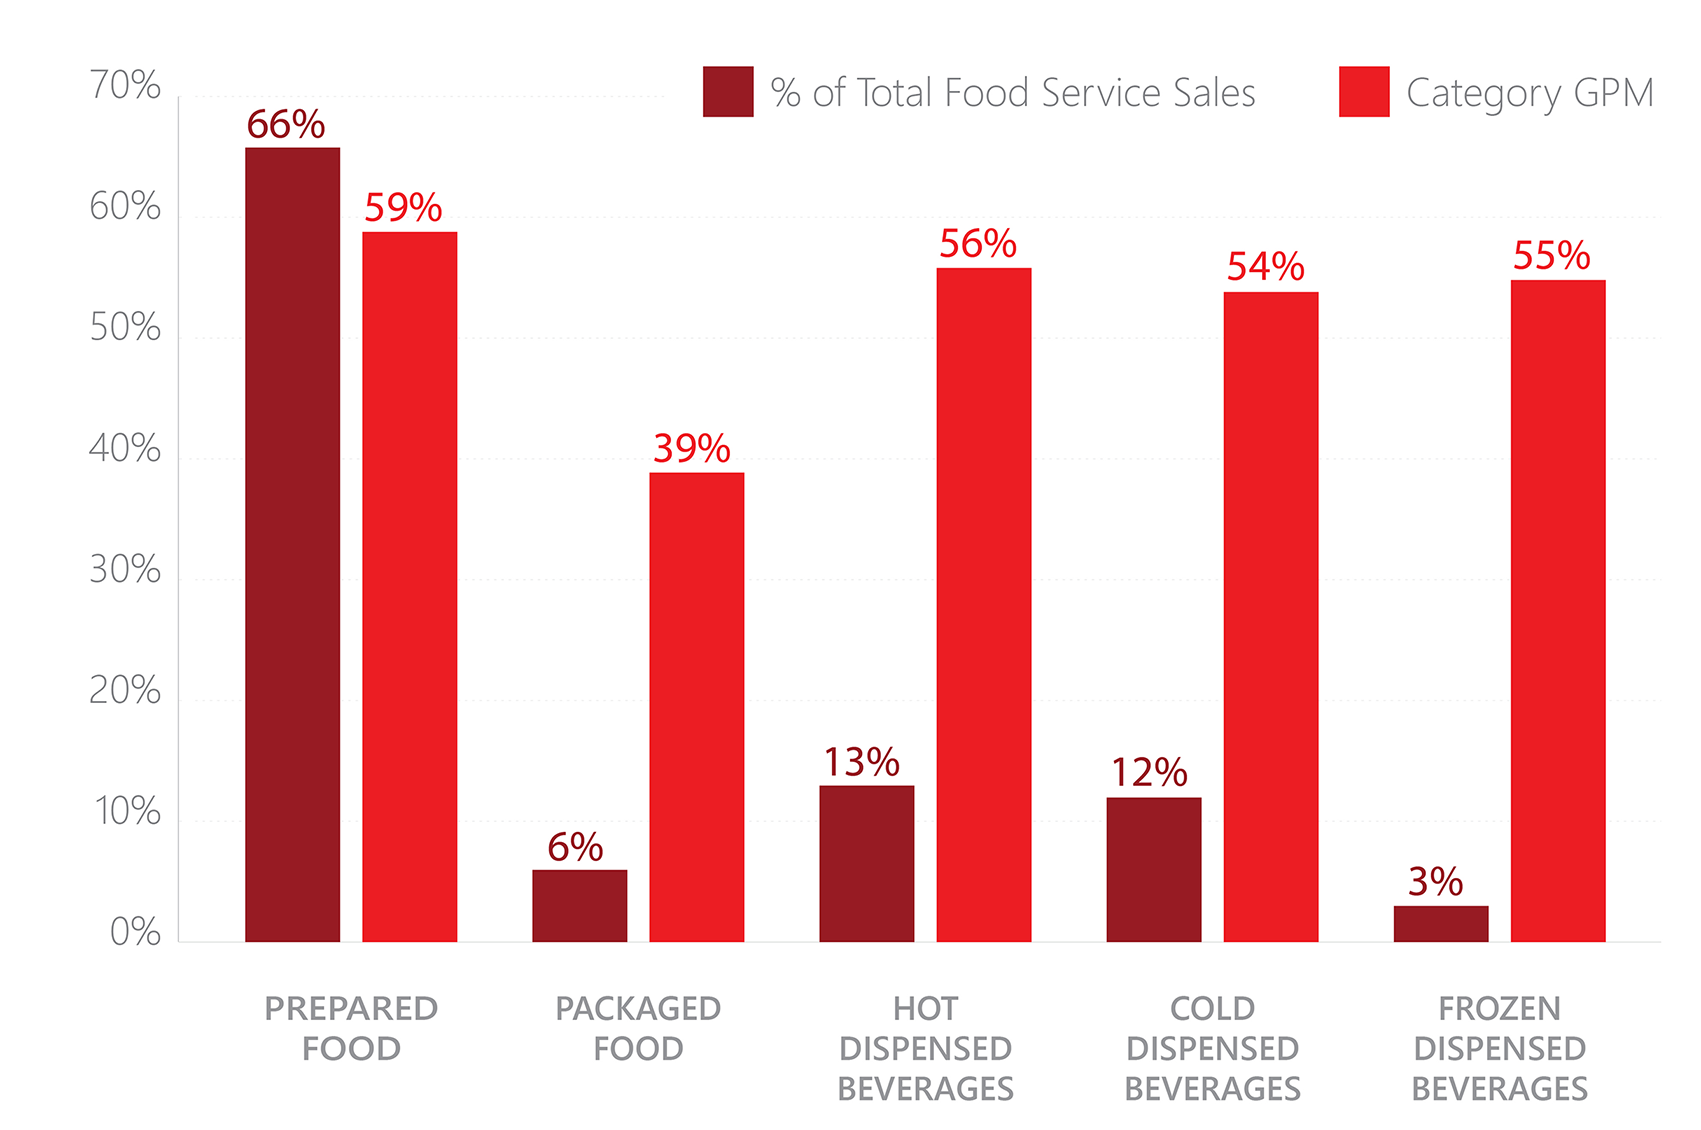 C-Store Food Service Sales and Margins (total food service sales): Prepared food - 66%; Packaged food - 6%; Hot dispensed beverages - 13%; Cold dispensed beverages - 12%; Frozen dispensed beverages - 3%.